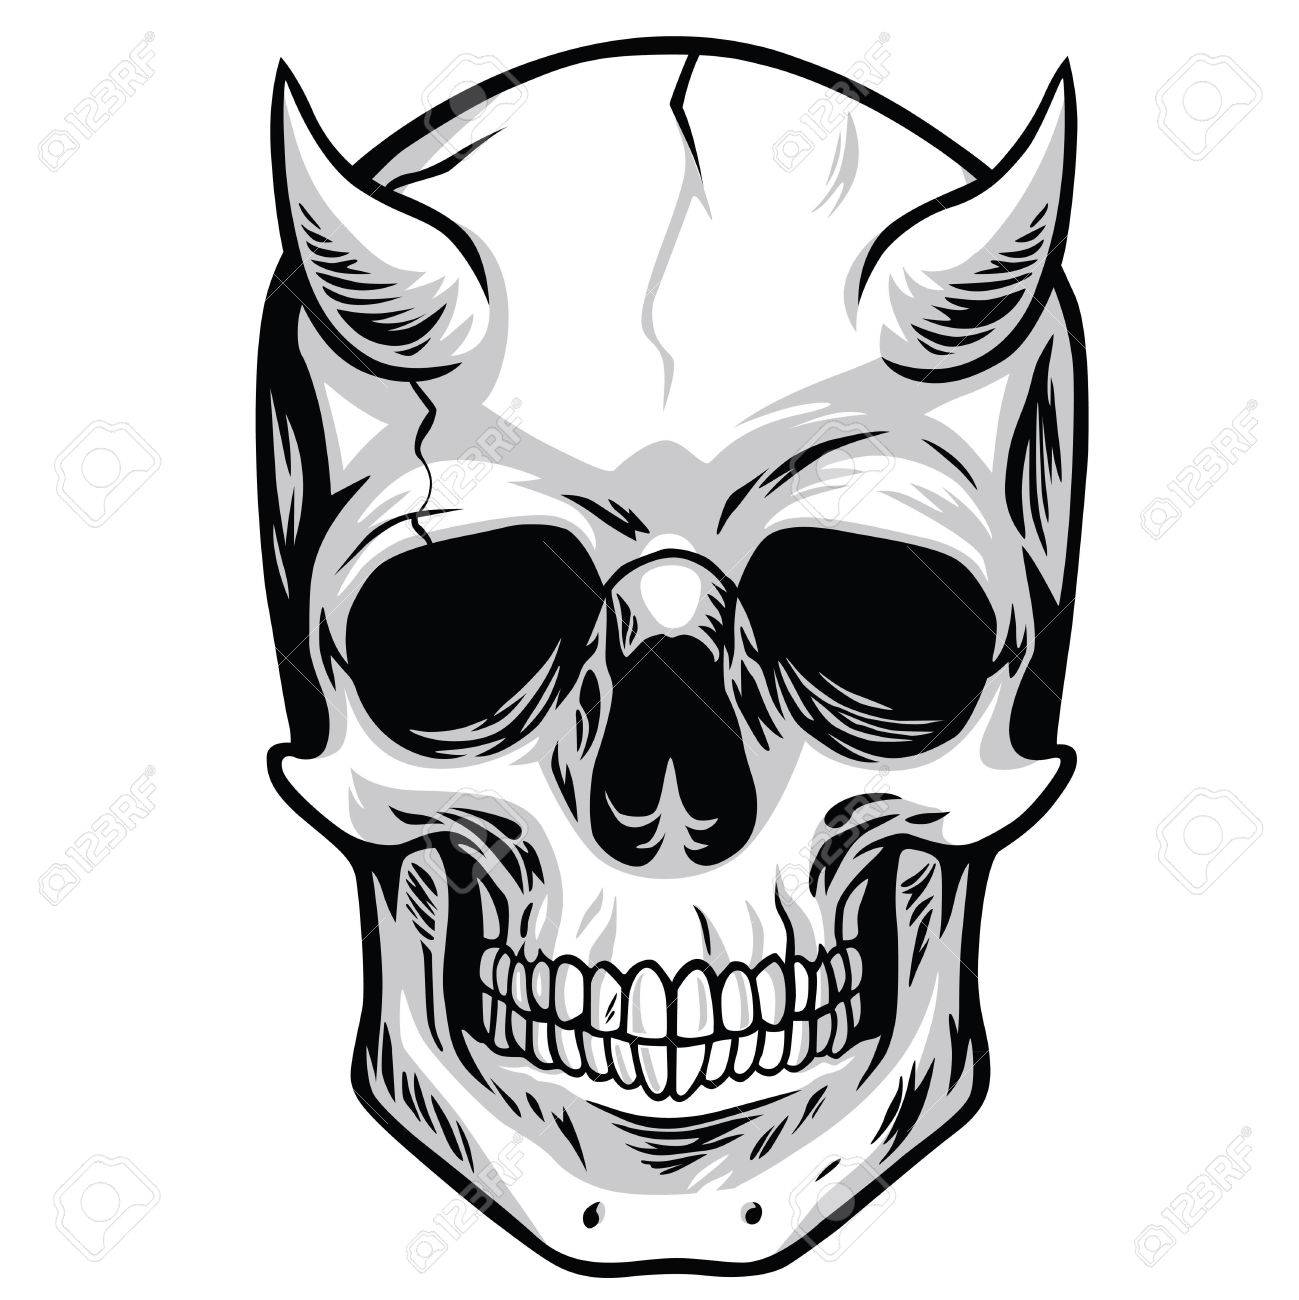 1299x1300 Skull Drawing Stock Photos. Royalty Free Business Images